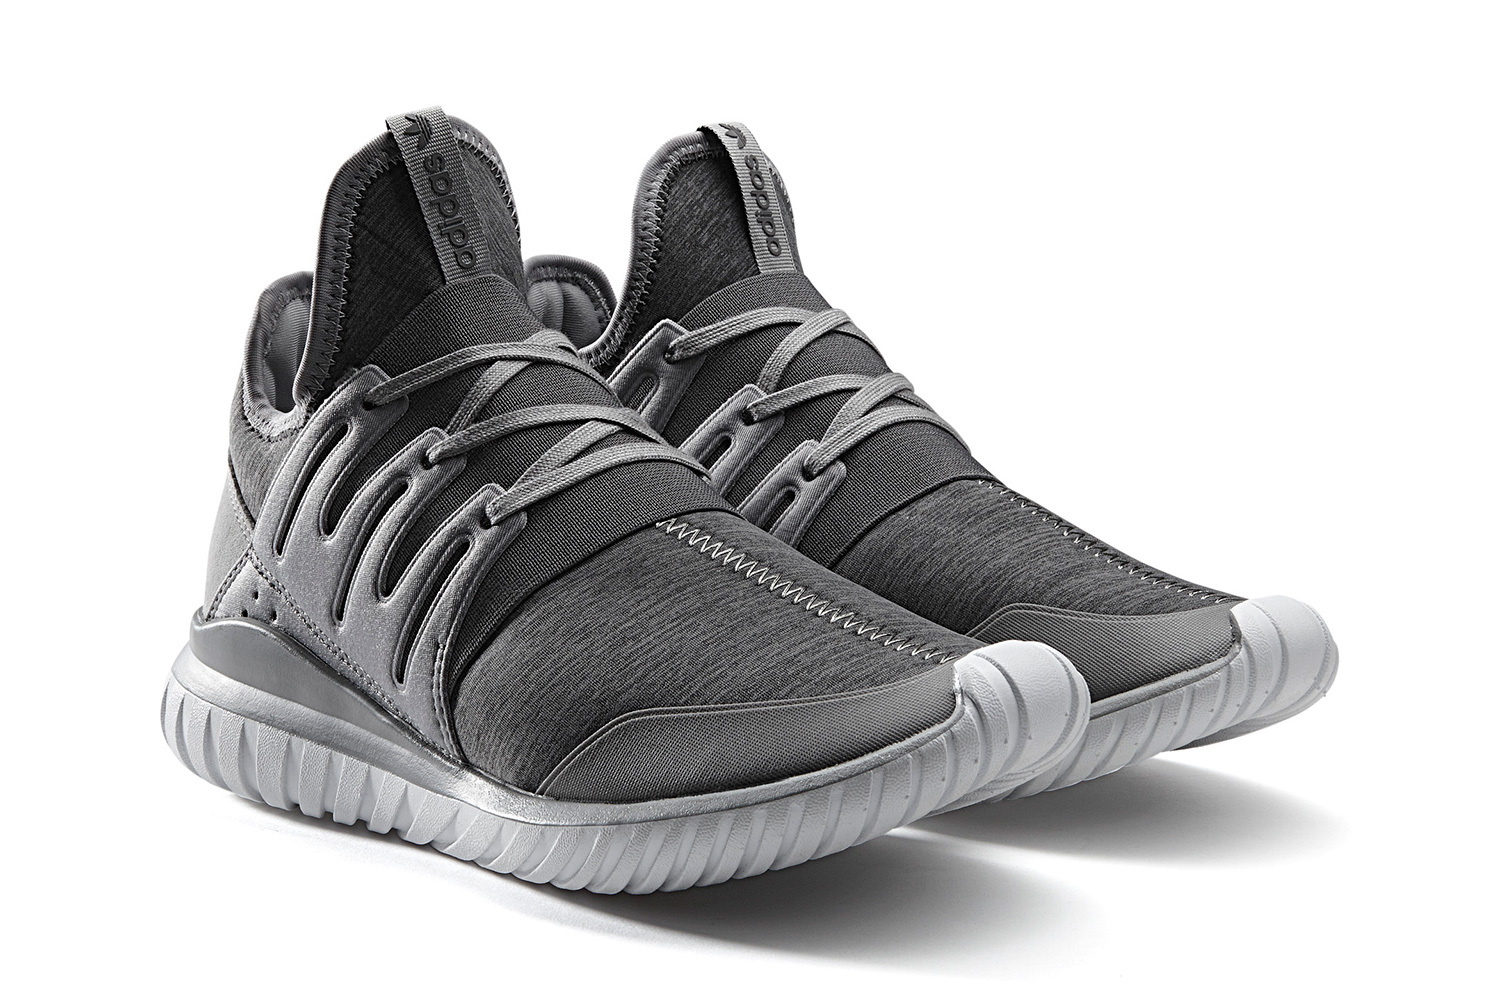 Adidas Tubular Radial On Sale